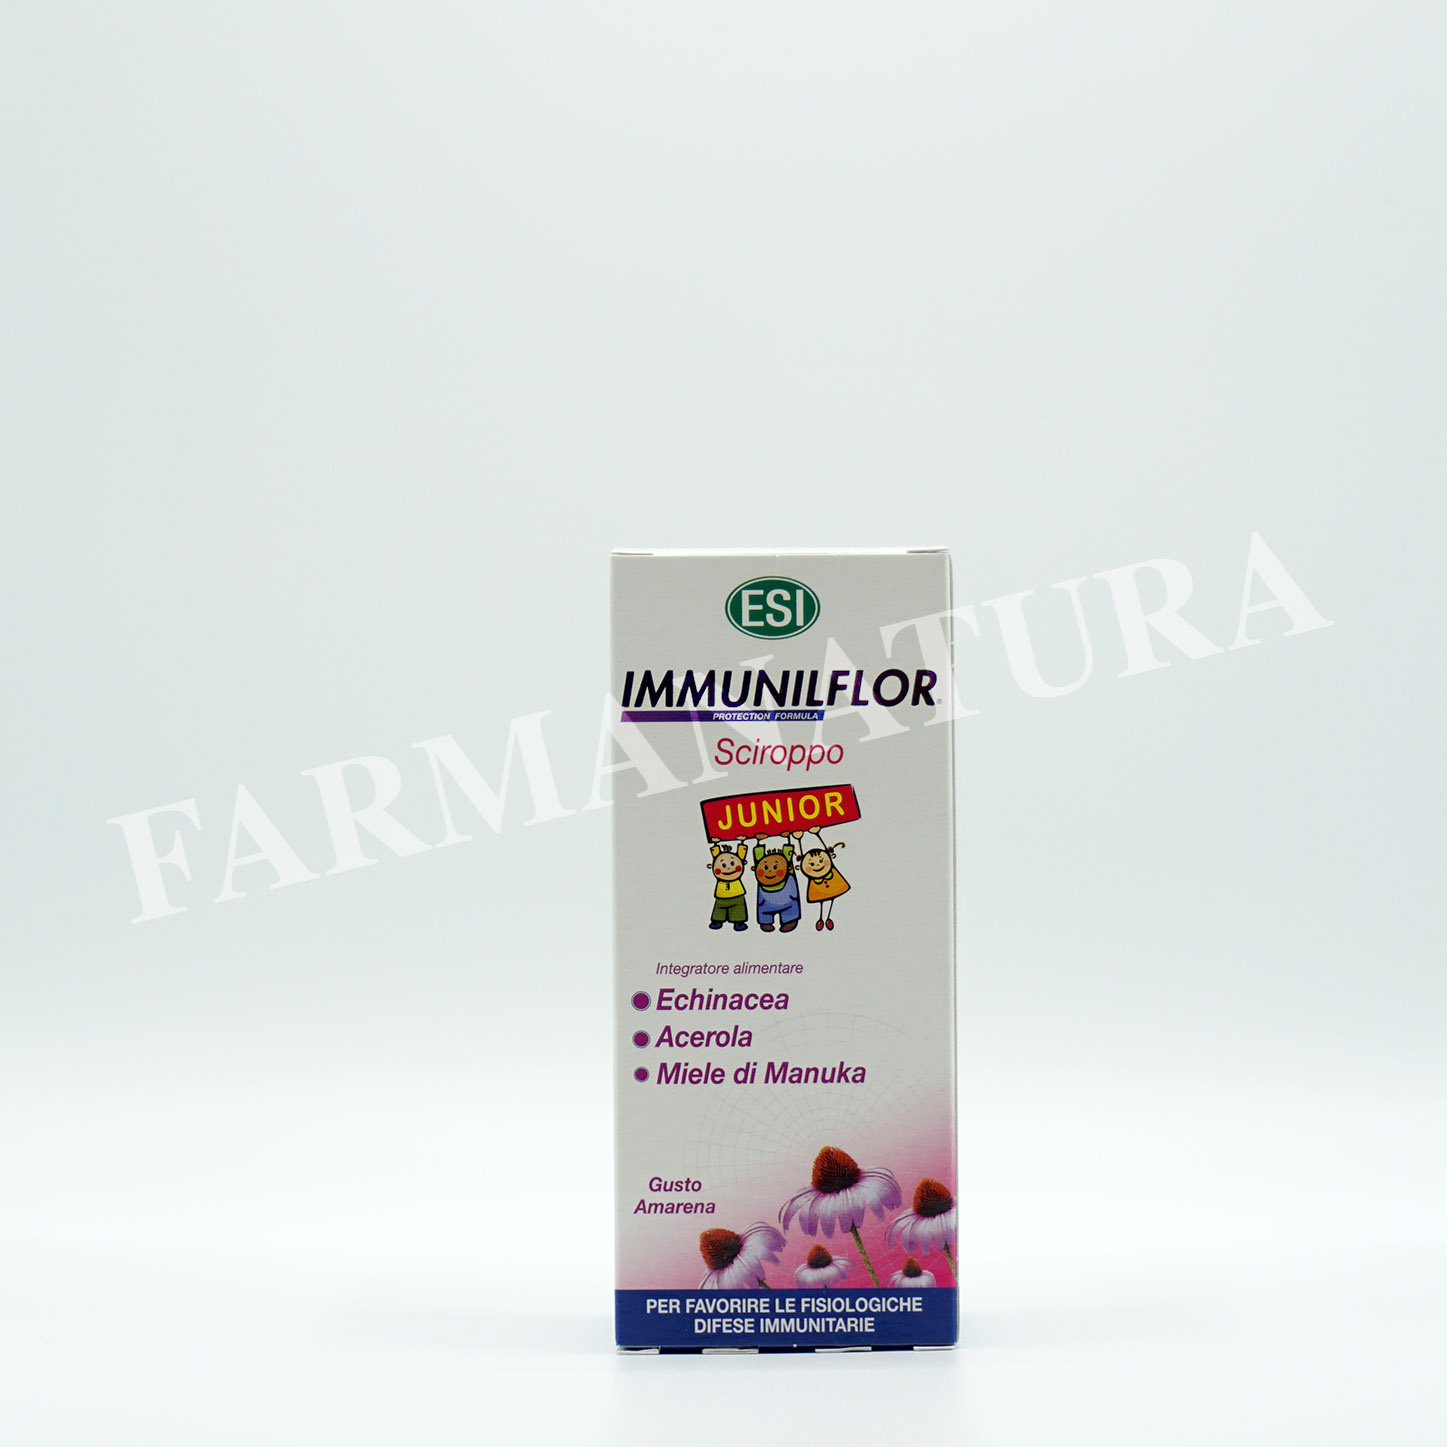 Immunilflor Sciroppo Jr. 200 Ml Esi